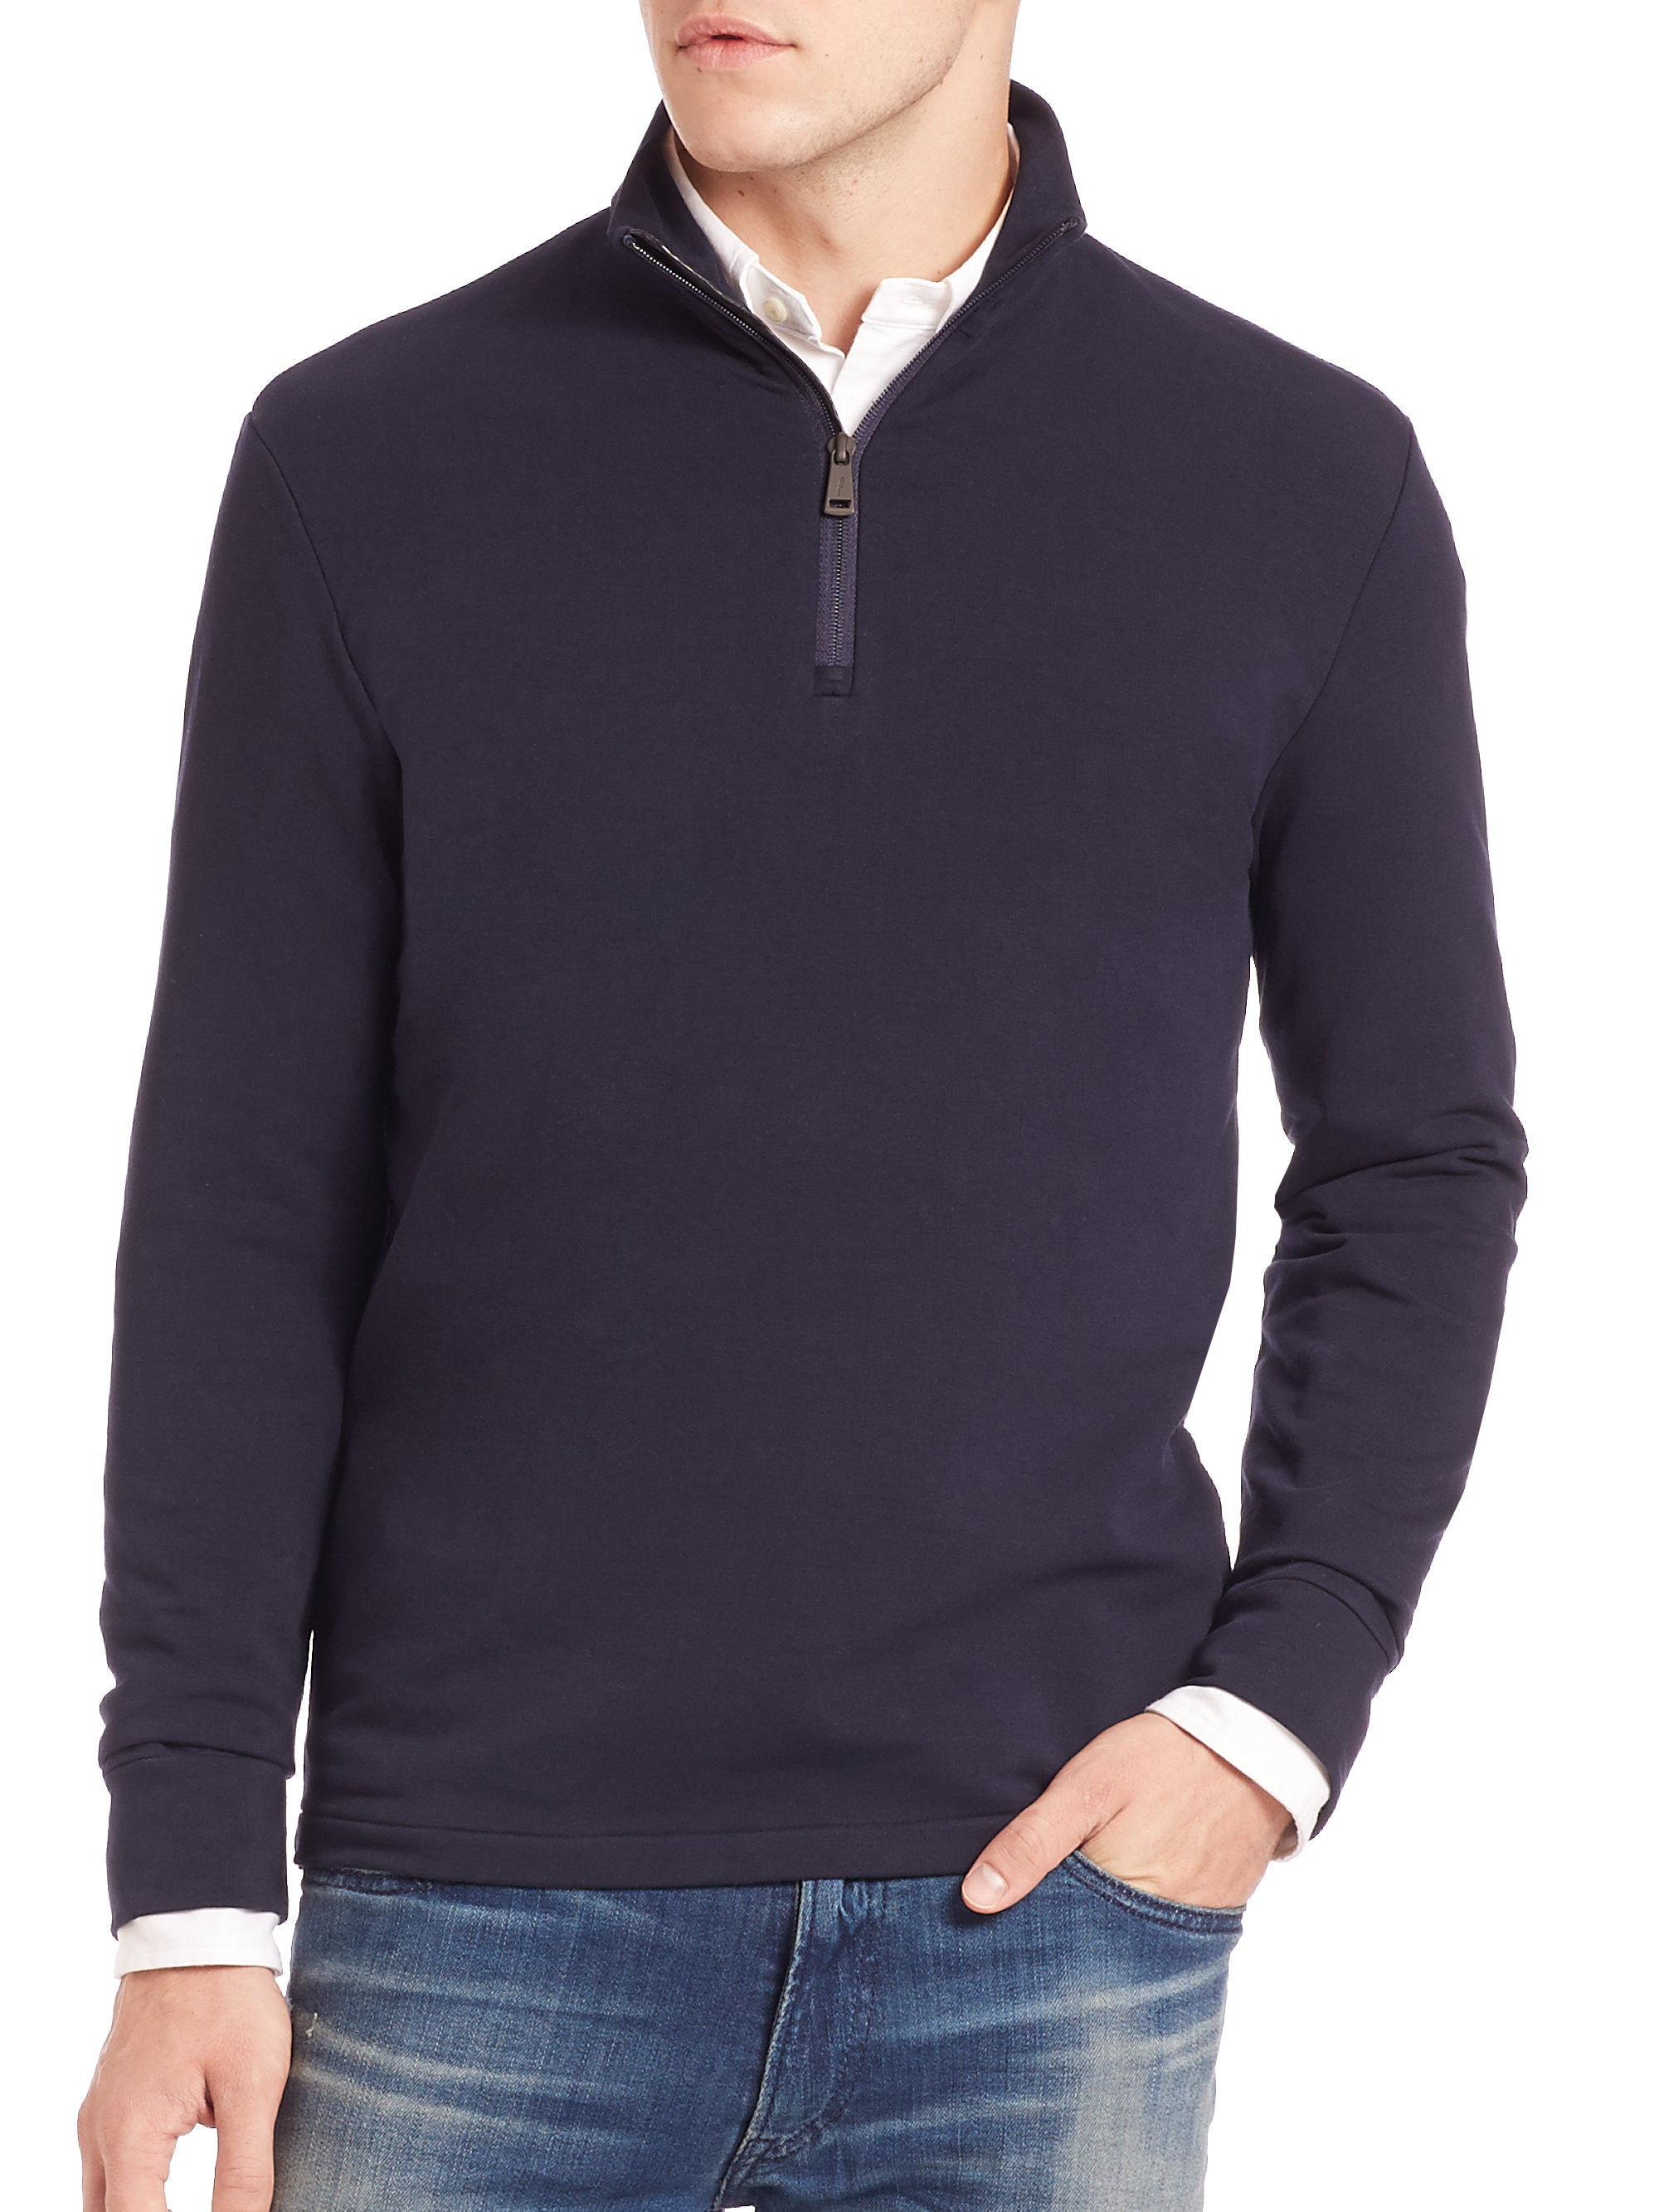 polo ralph lauren half zip pima cotton pullover in blue for men lyst. Black Bedroom Furniture Sets. Home Design Ideas